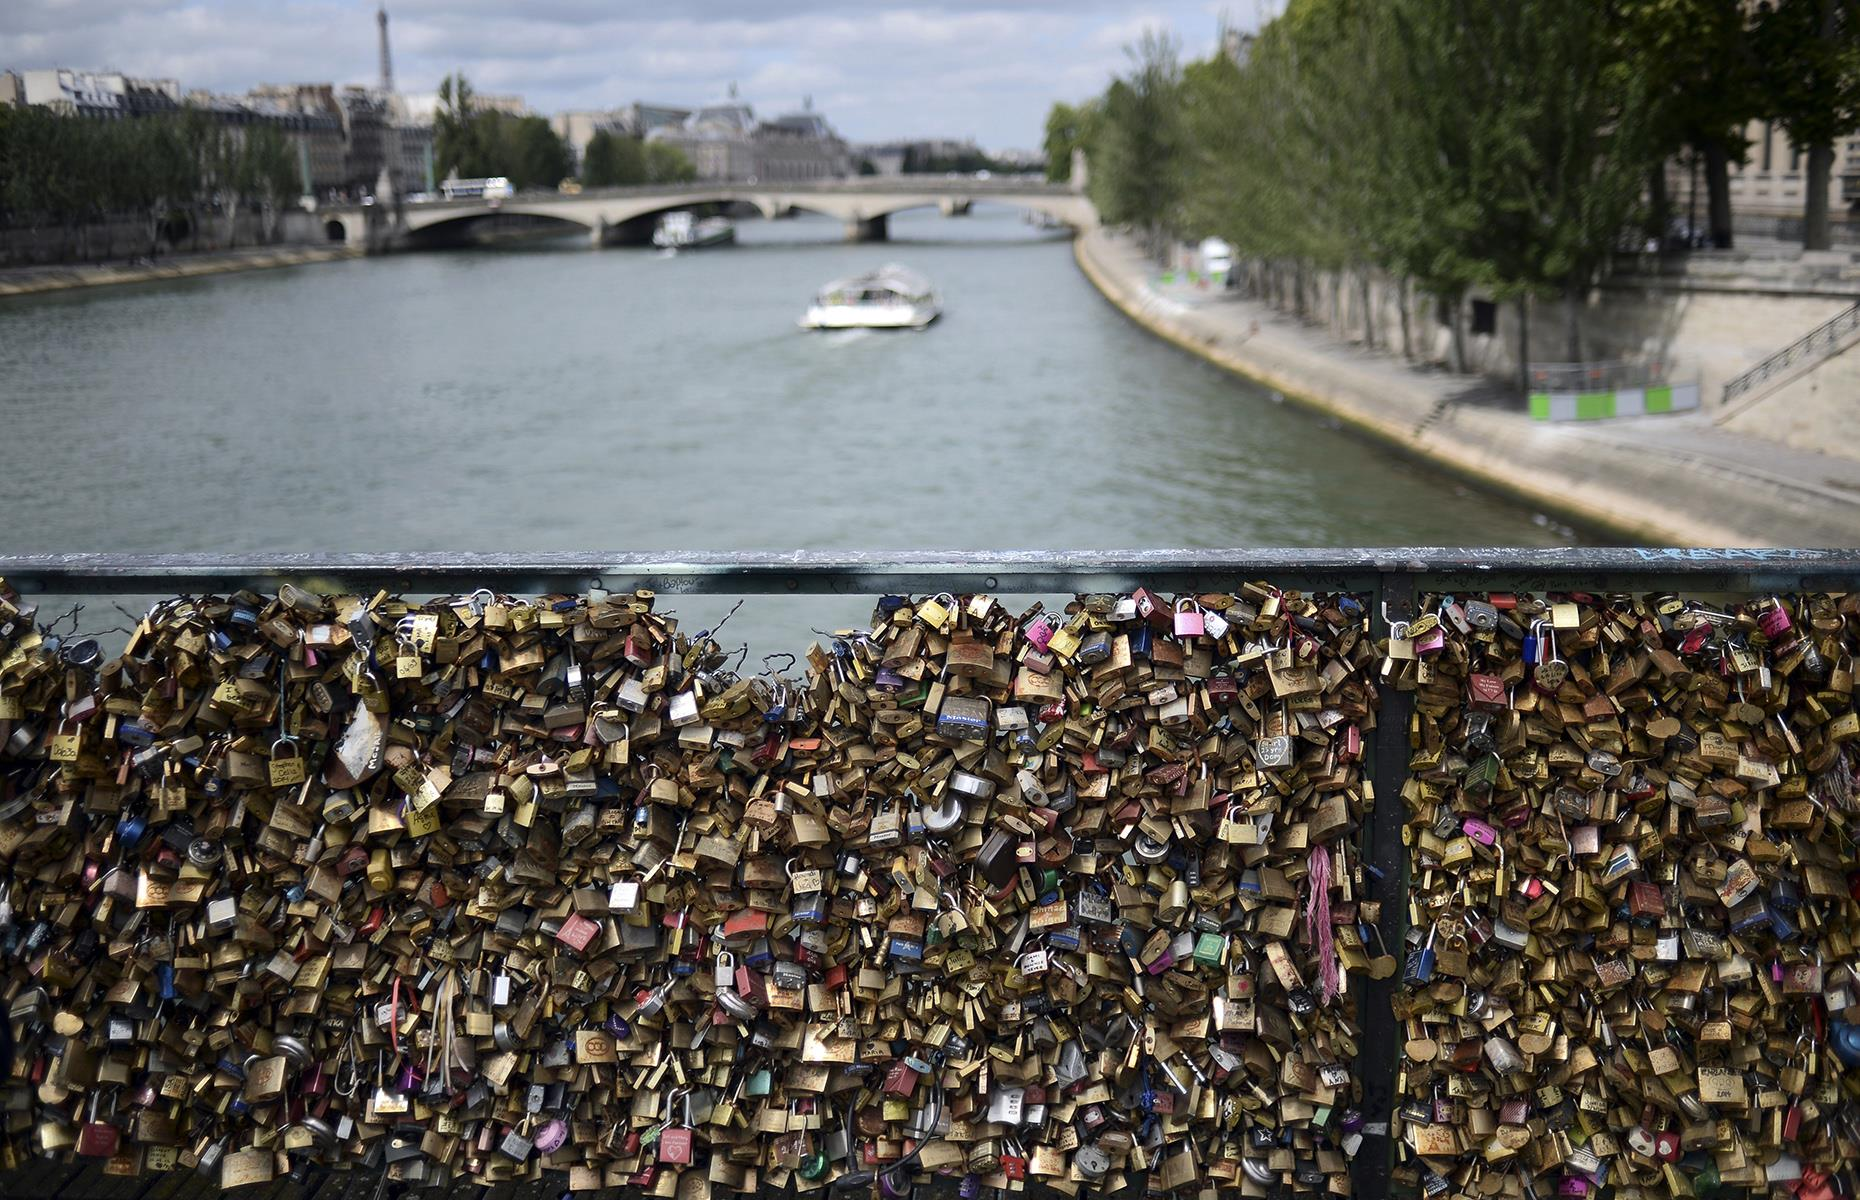 Slide 26 of 39: This quirky tradition saw tourists flocking to the City of Love to express their amour by signing theirs and their partner's names on padlocks, before attaching them to the Pont des Arts over the River Seine. The practice became so popular that at one point the bridge contained one million padlocks weighing around 45 tons.